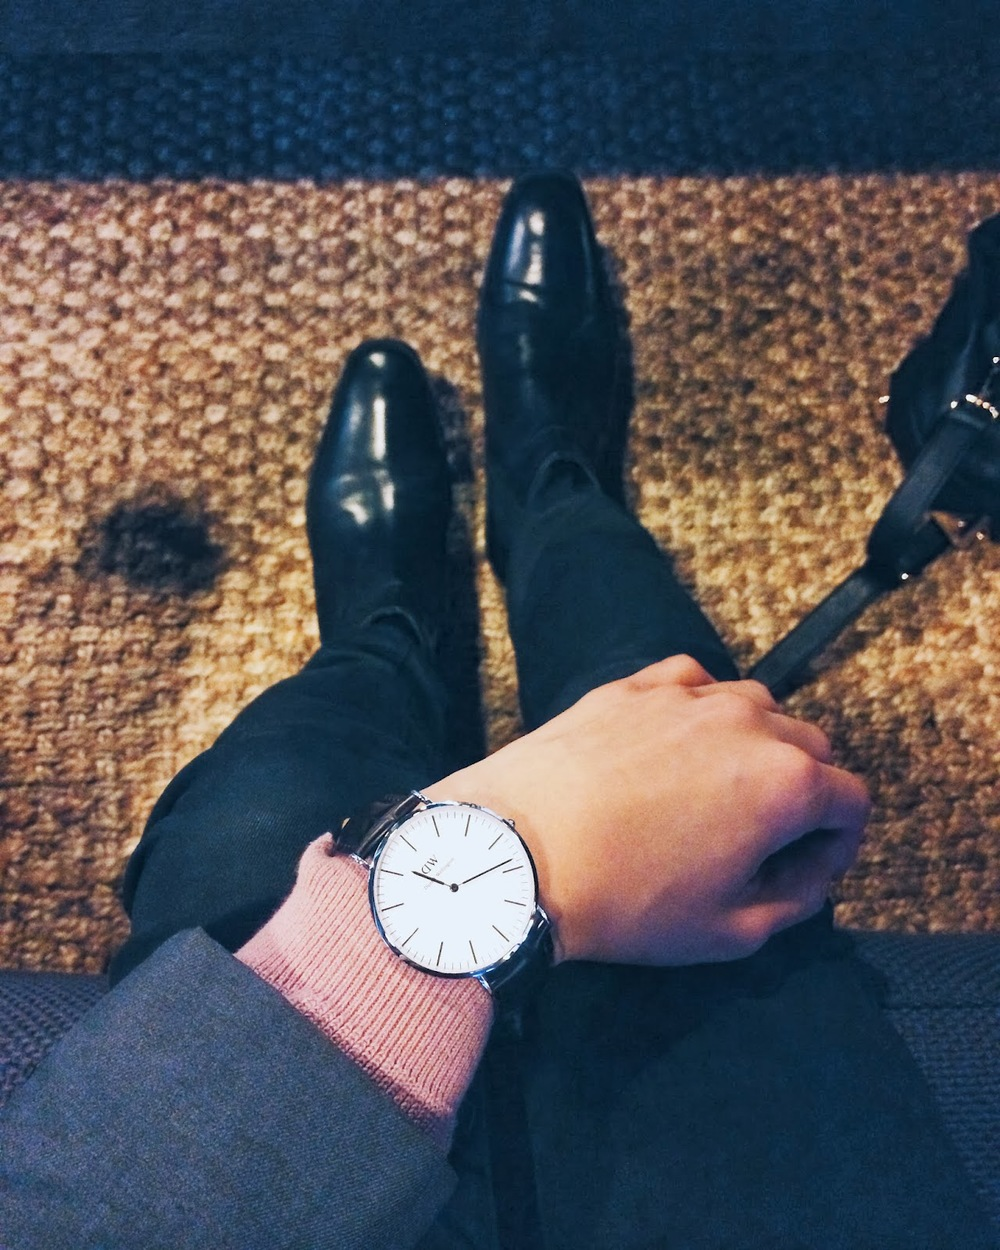 mybelonging-menswearblogger-danielwellington-watch.JPG